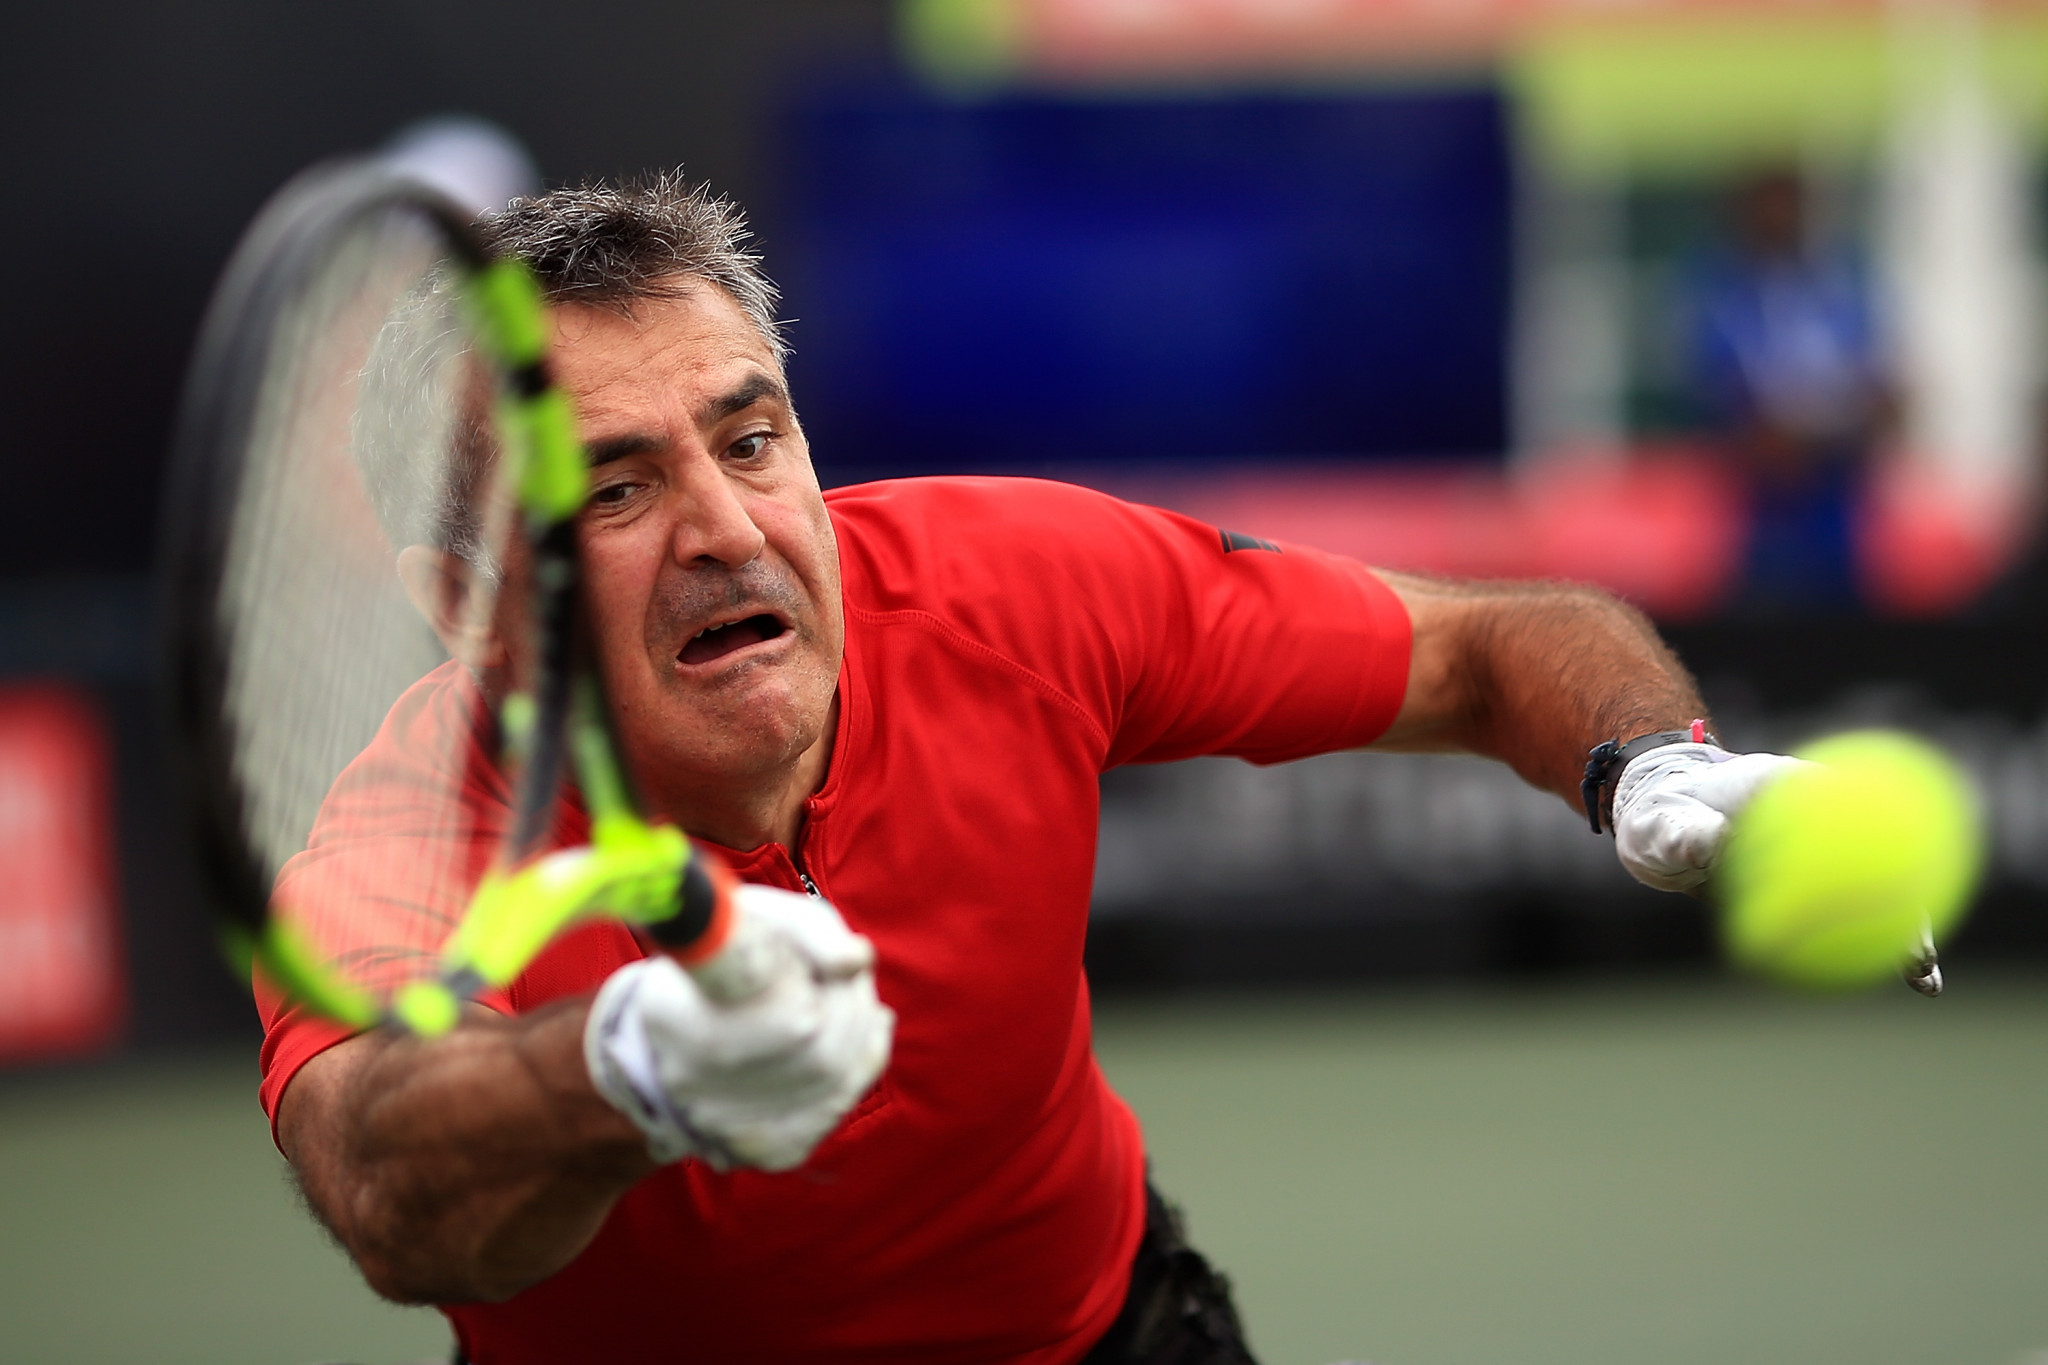 Houdet ends Fernández's grand slam ambition at US Open